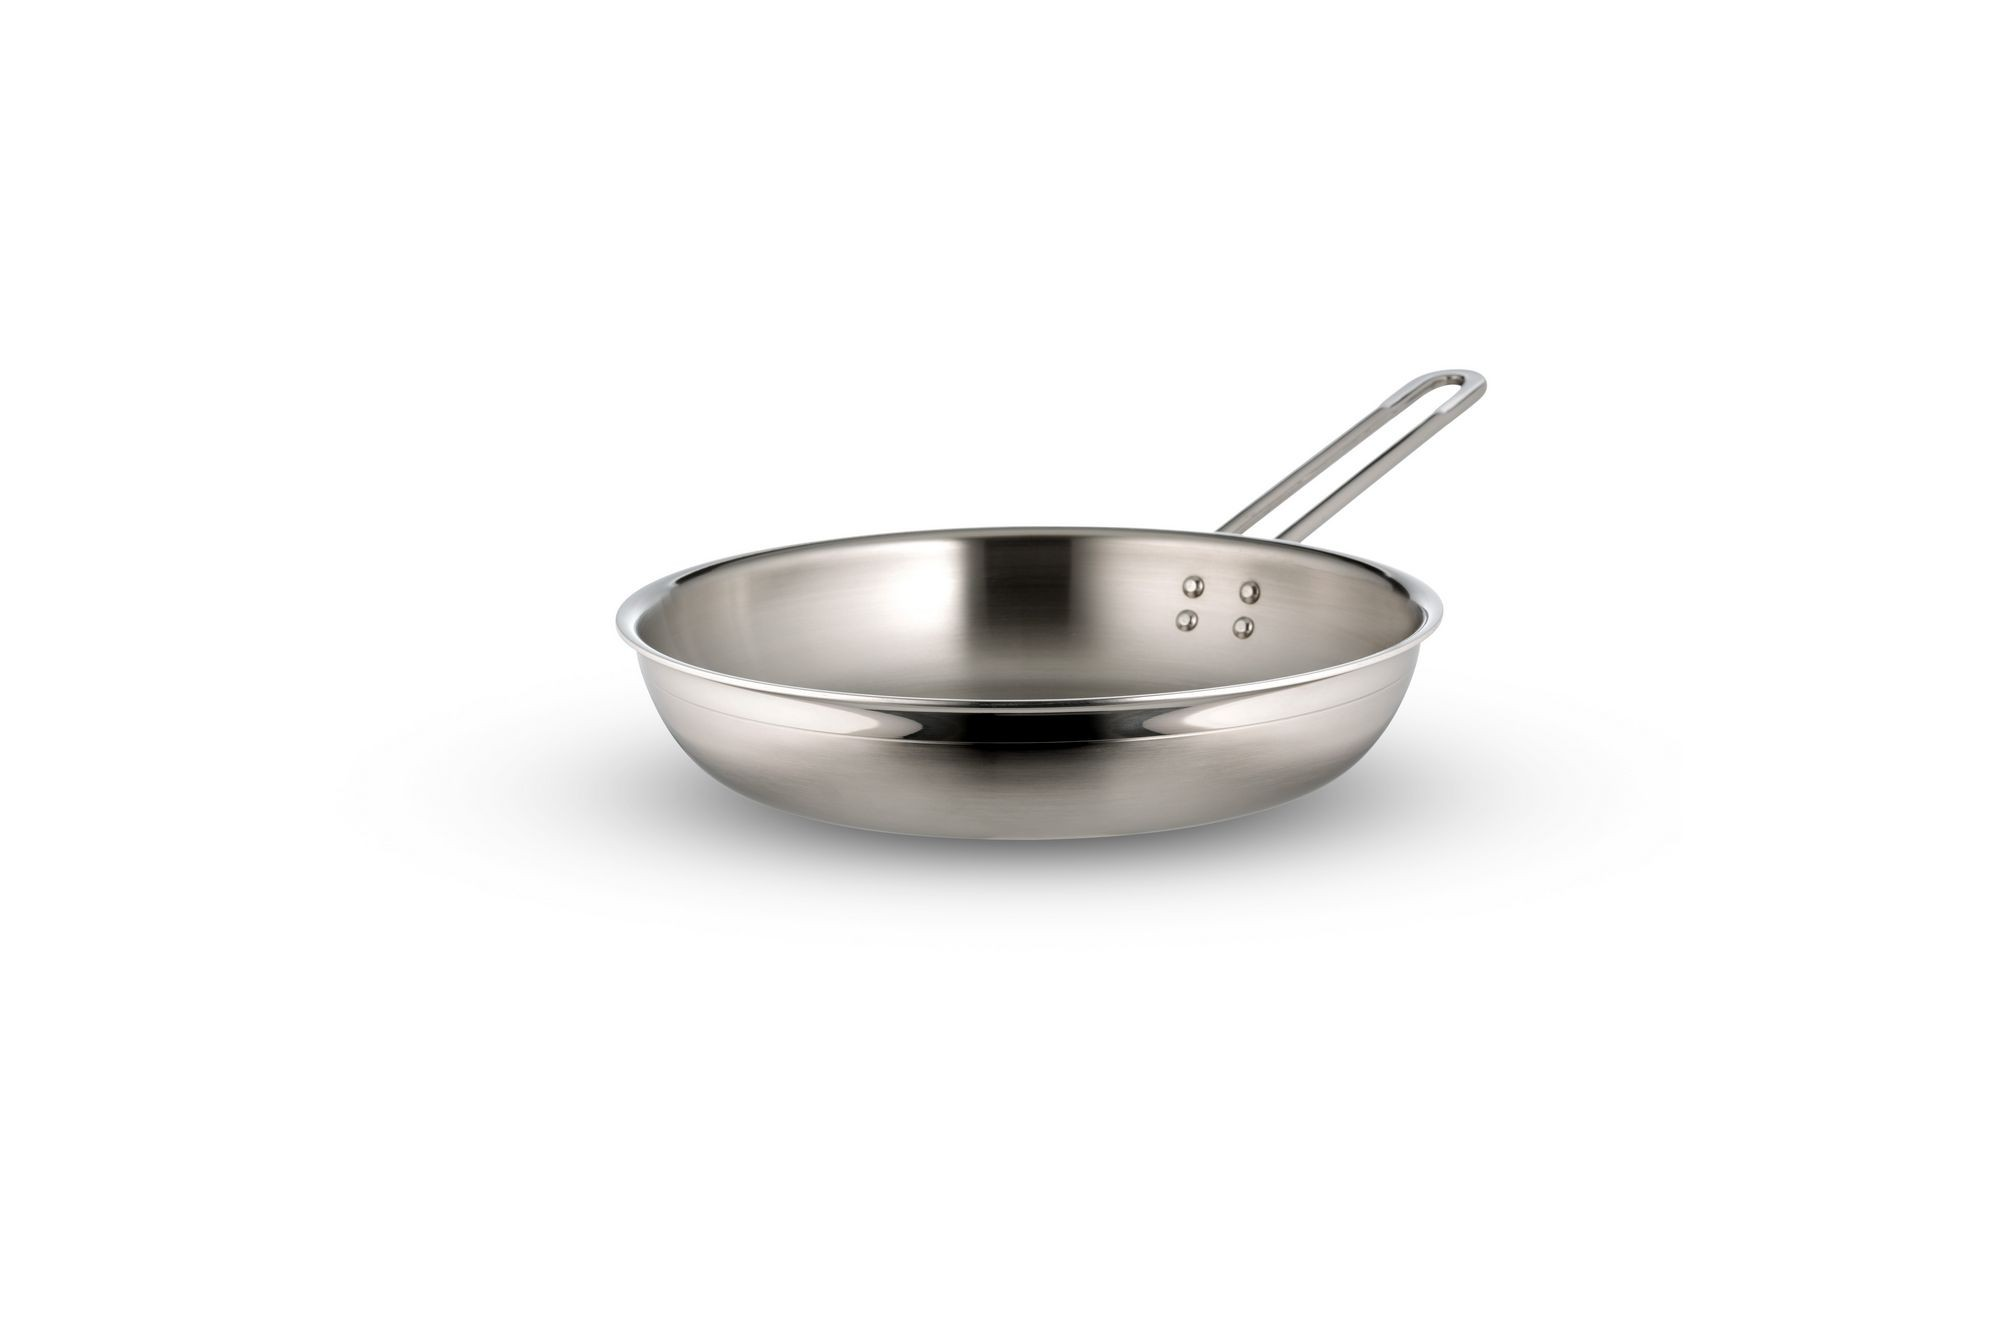 Bon Chef 60307-2ToneSS Country French Two Tone Stainless Steel Saute Pan with Long Handle, 1 Qt. 20 oz.